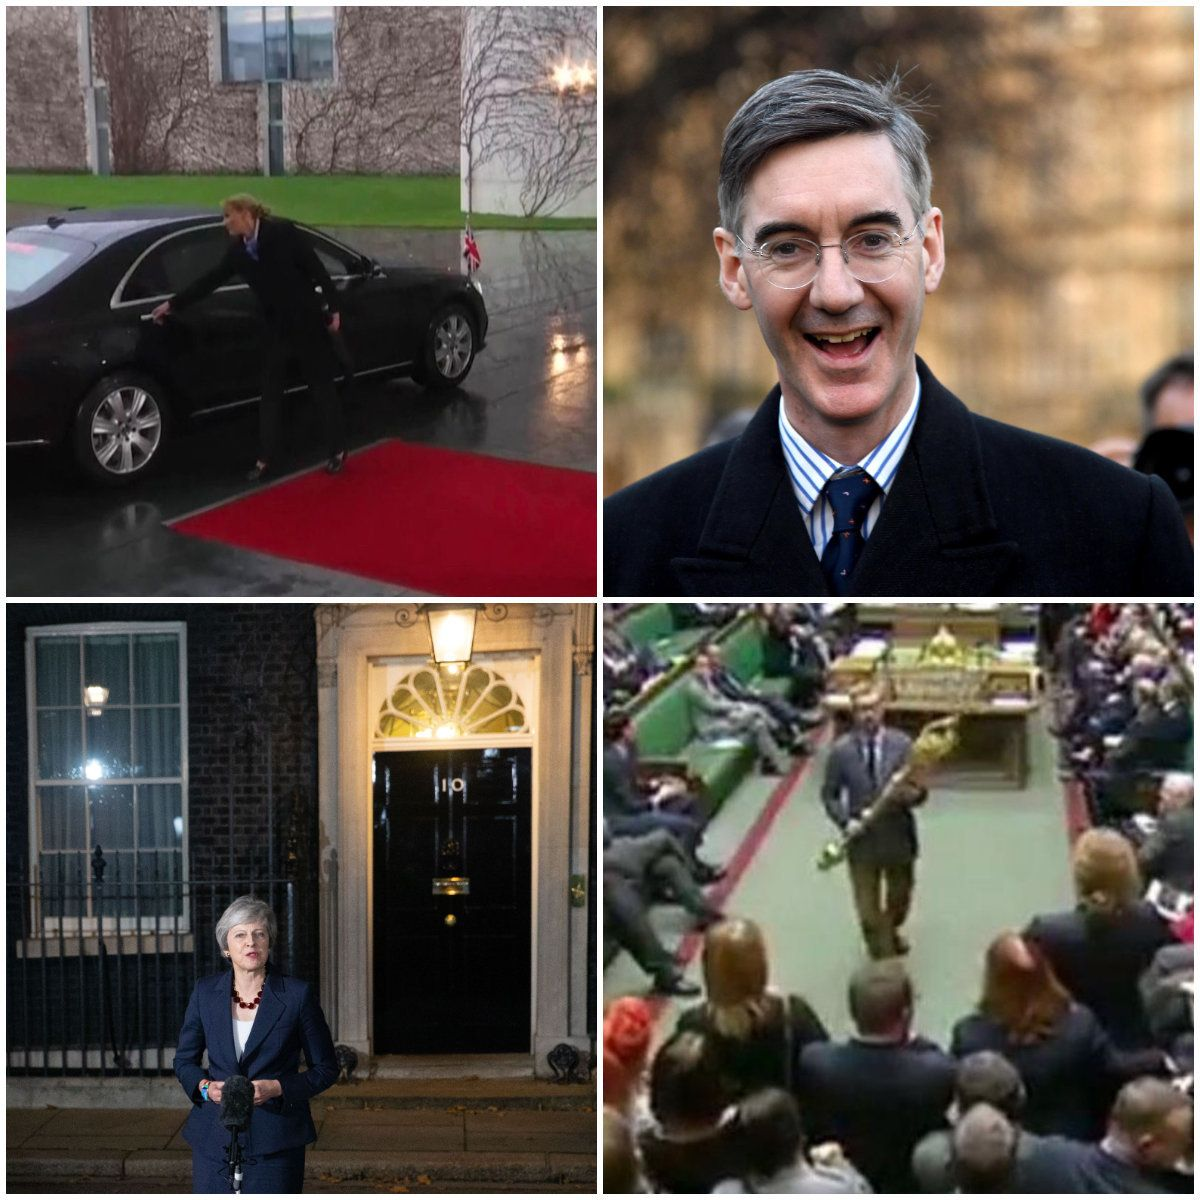 From Mace Theft To Getting Locked In A Car: Britain's Brexit Humiliation Goes On And